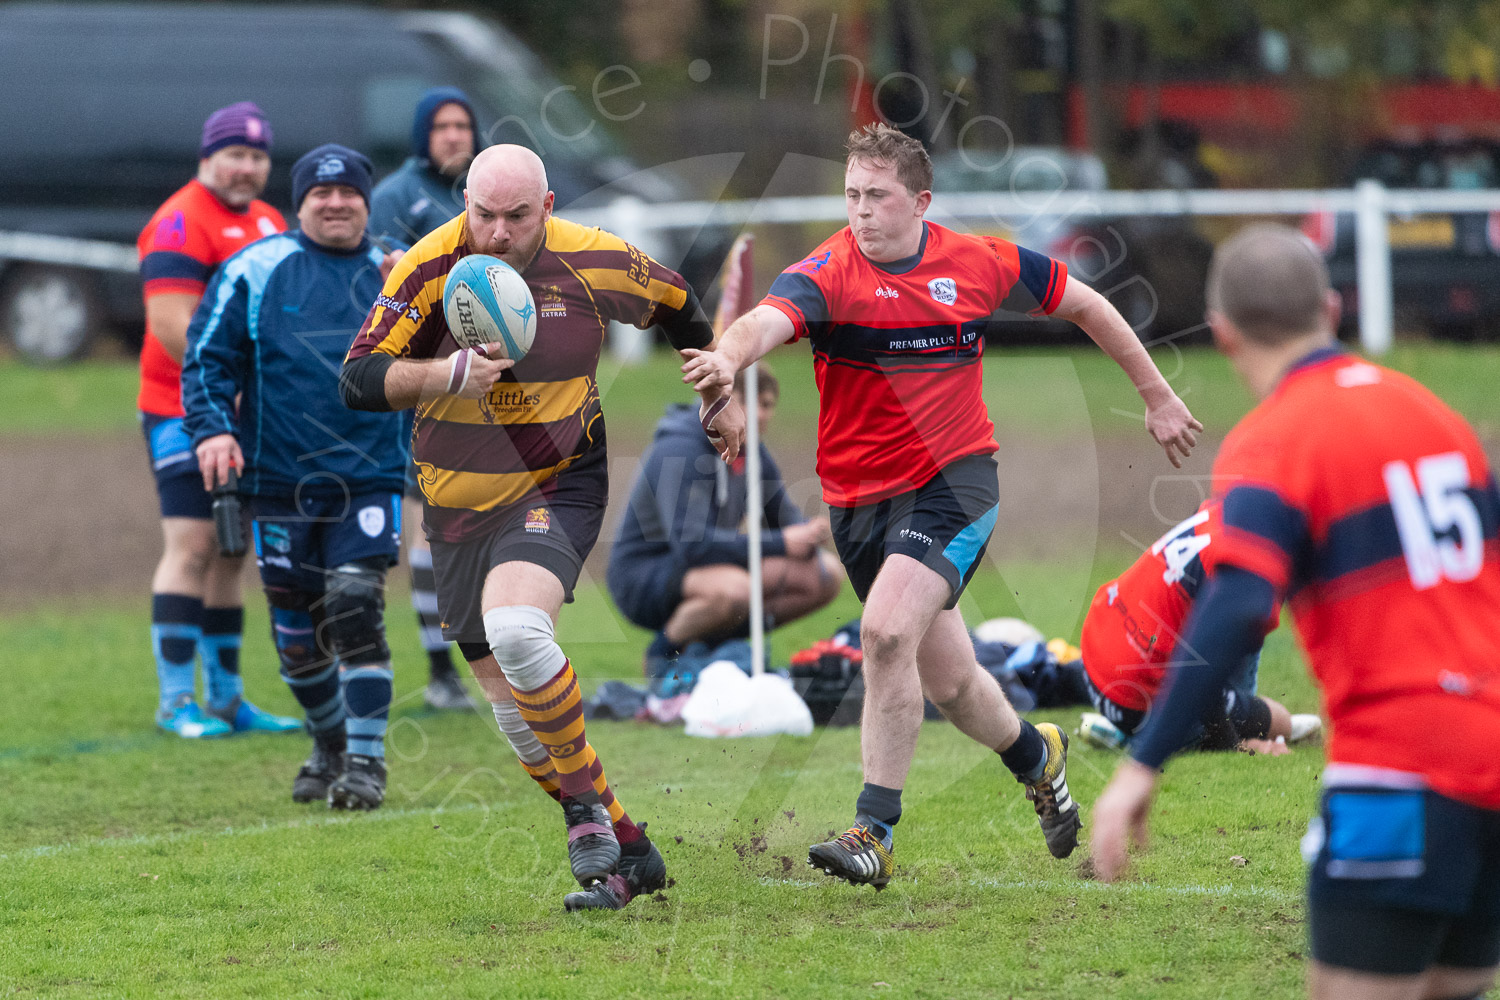 20181027 Amp Extras vs St Neots 2nd XV #2456